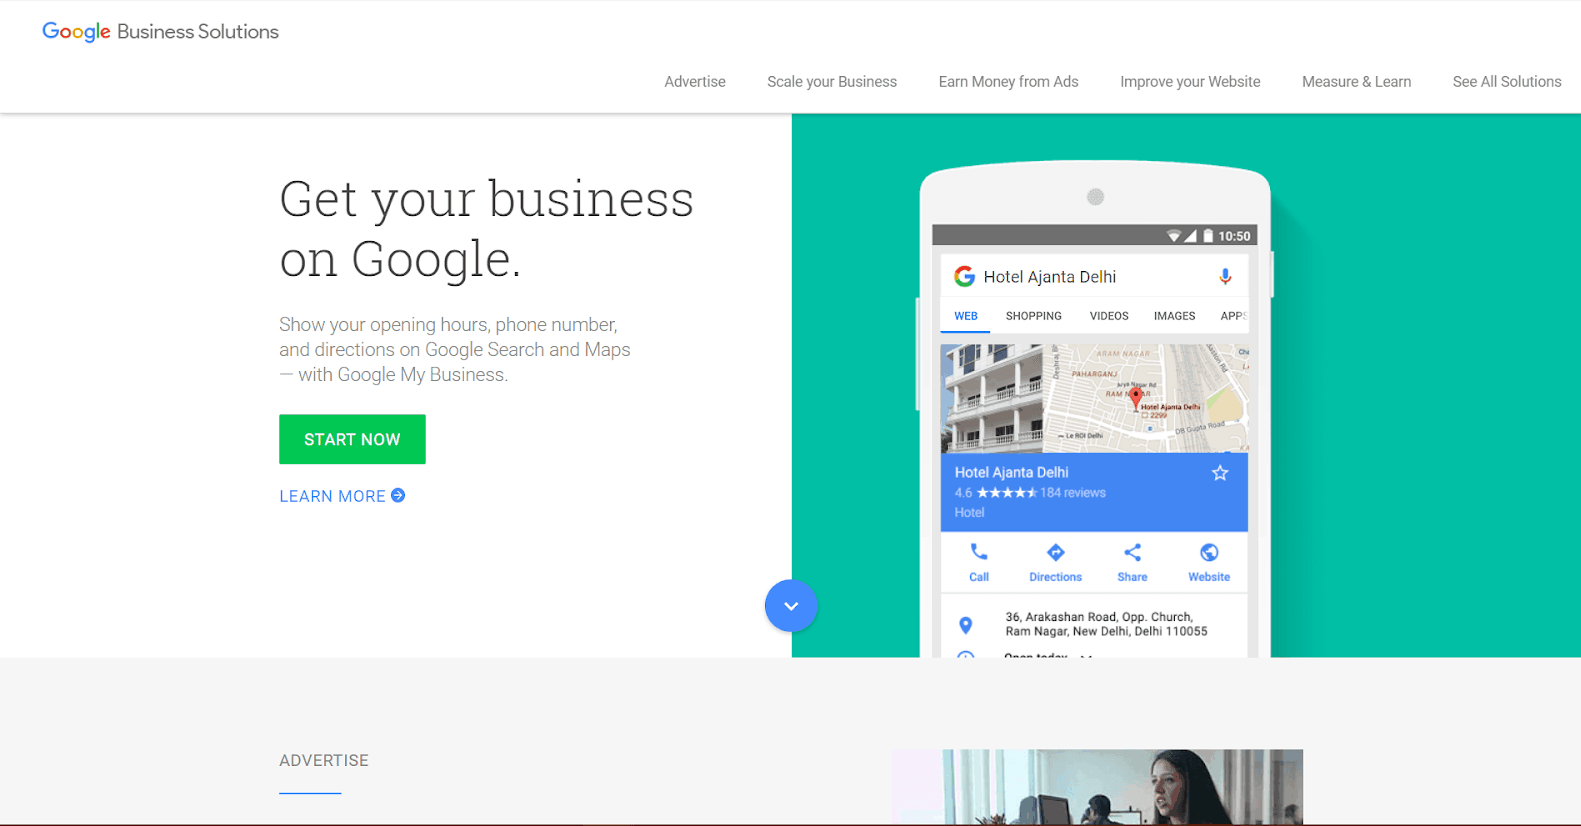 Google Business Solutions Tools